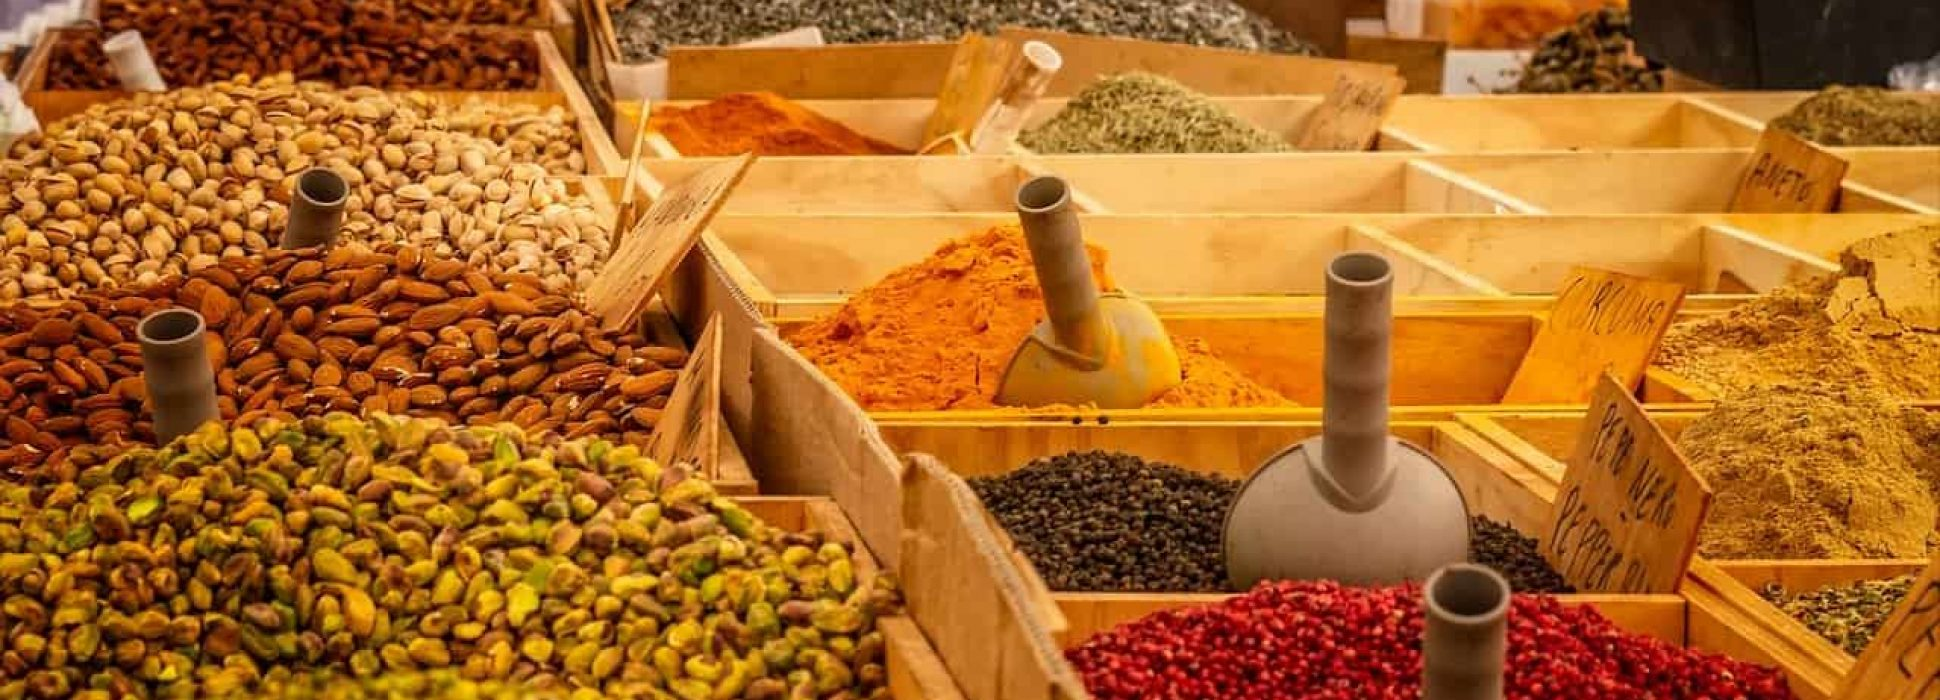 market, stand, spices